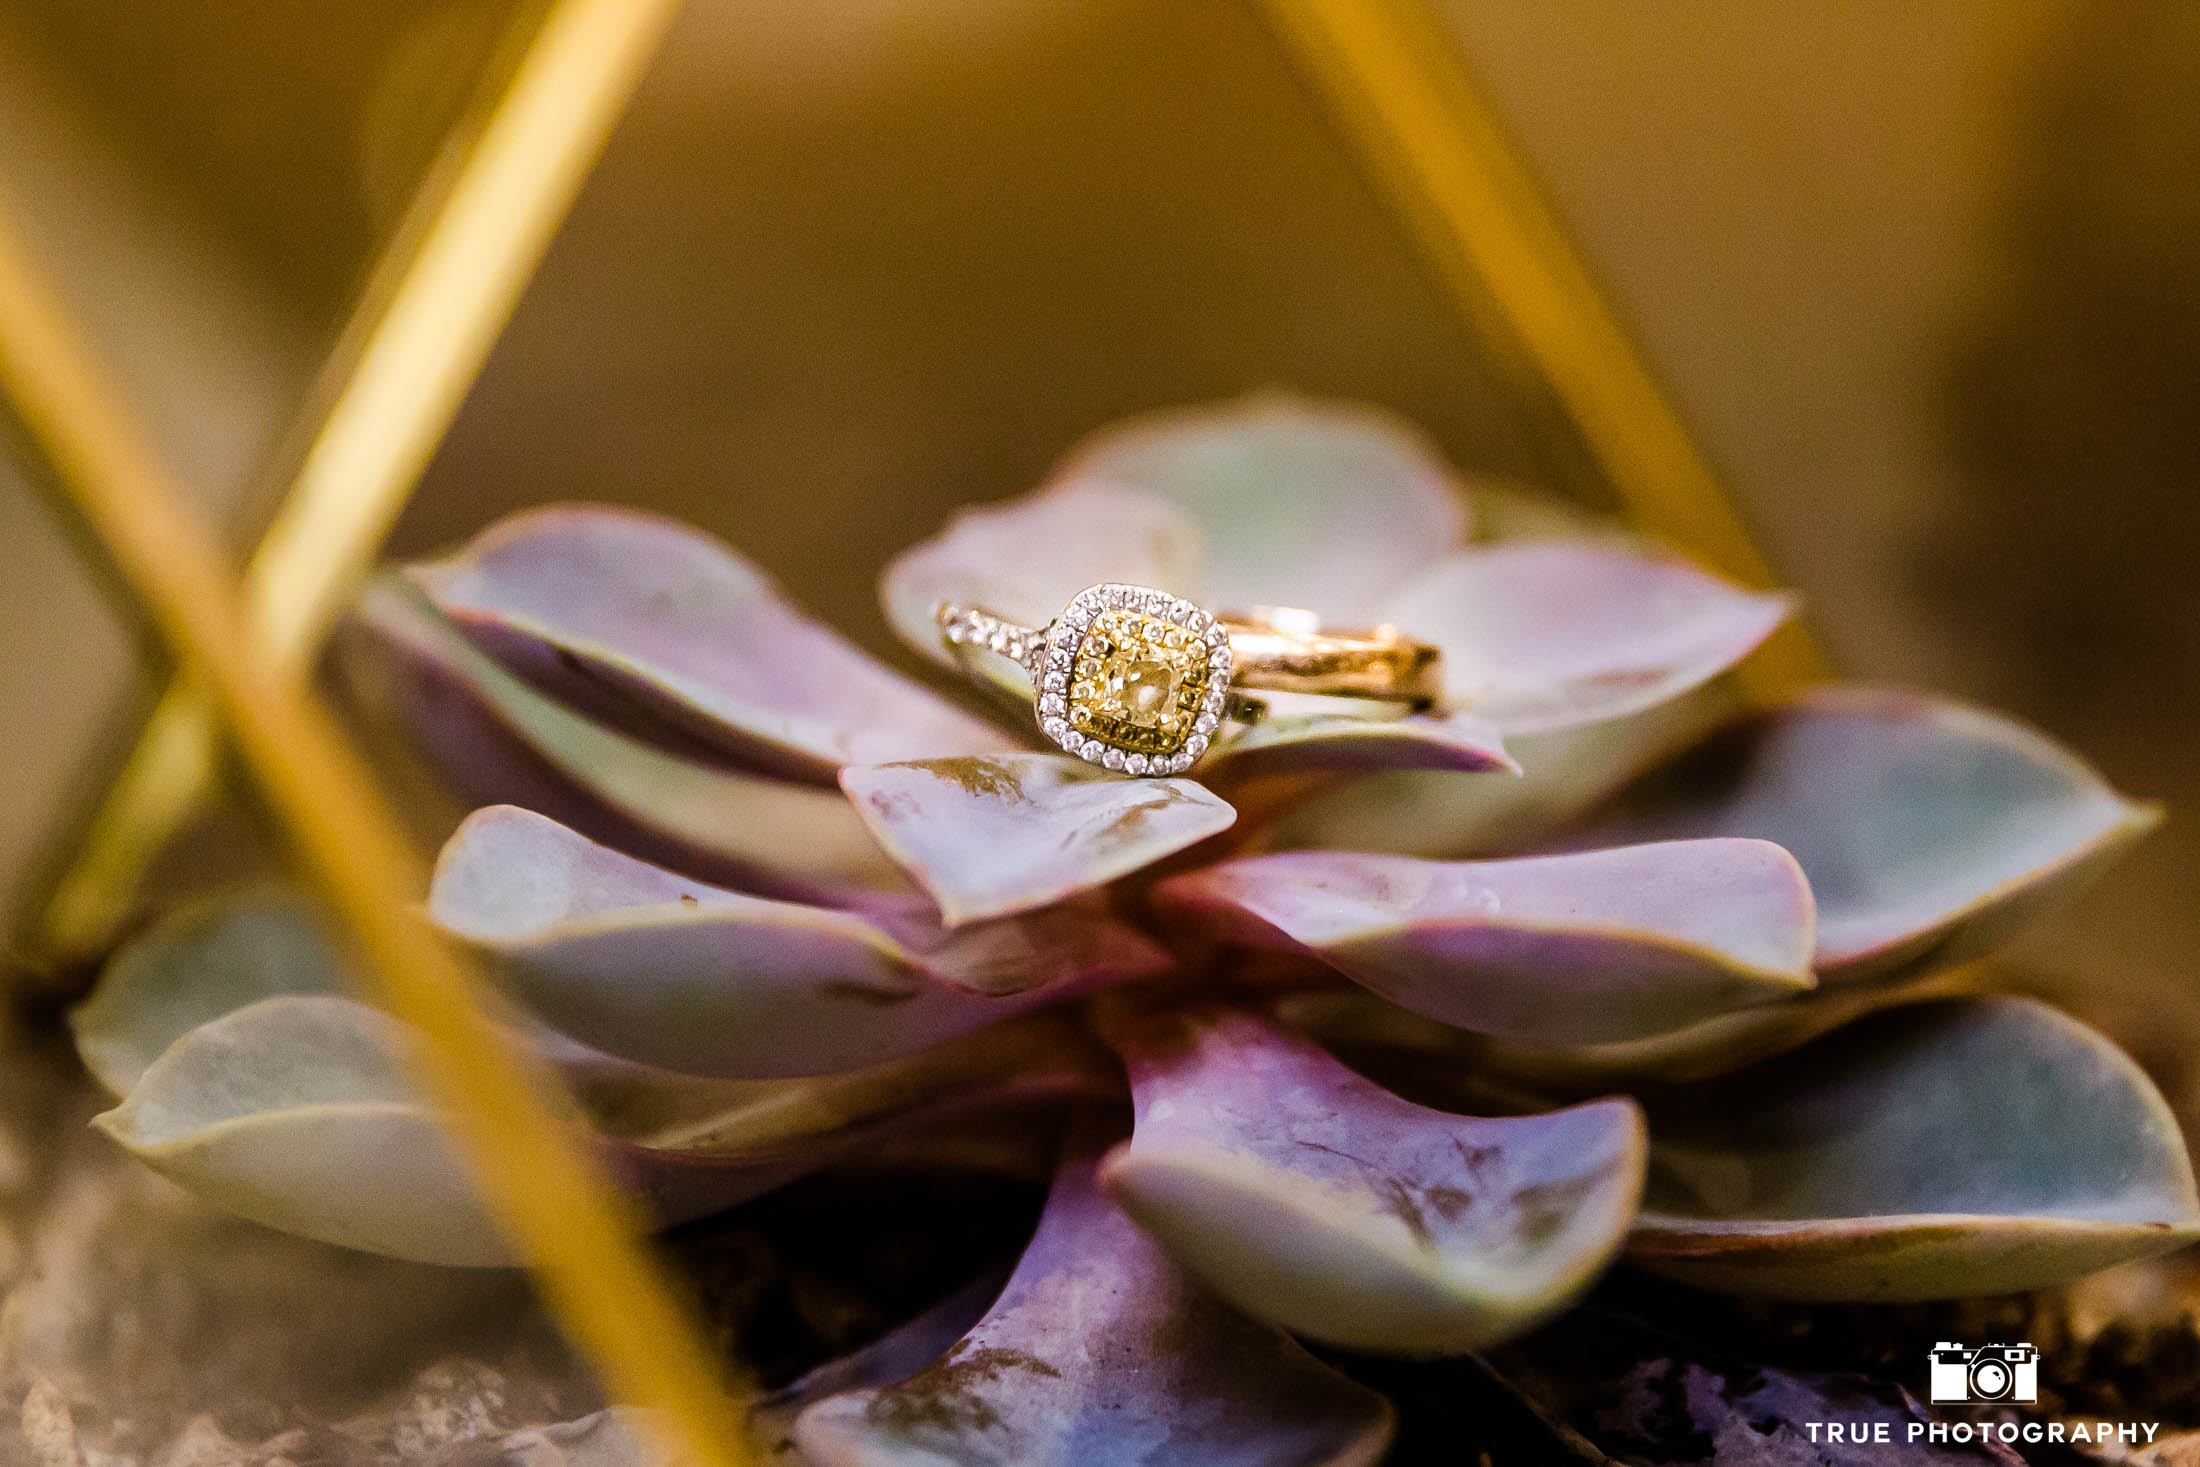 Bride and Groom's gold band and yellow diamond wedding rings